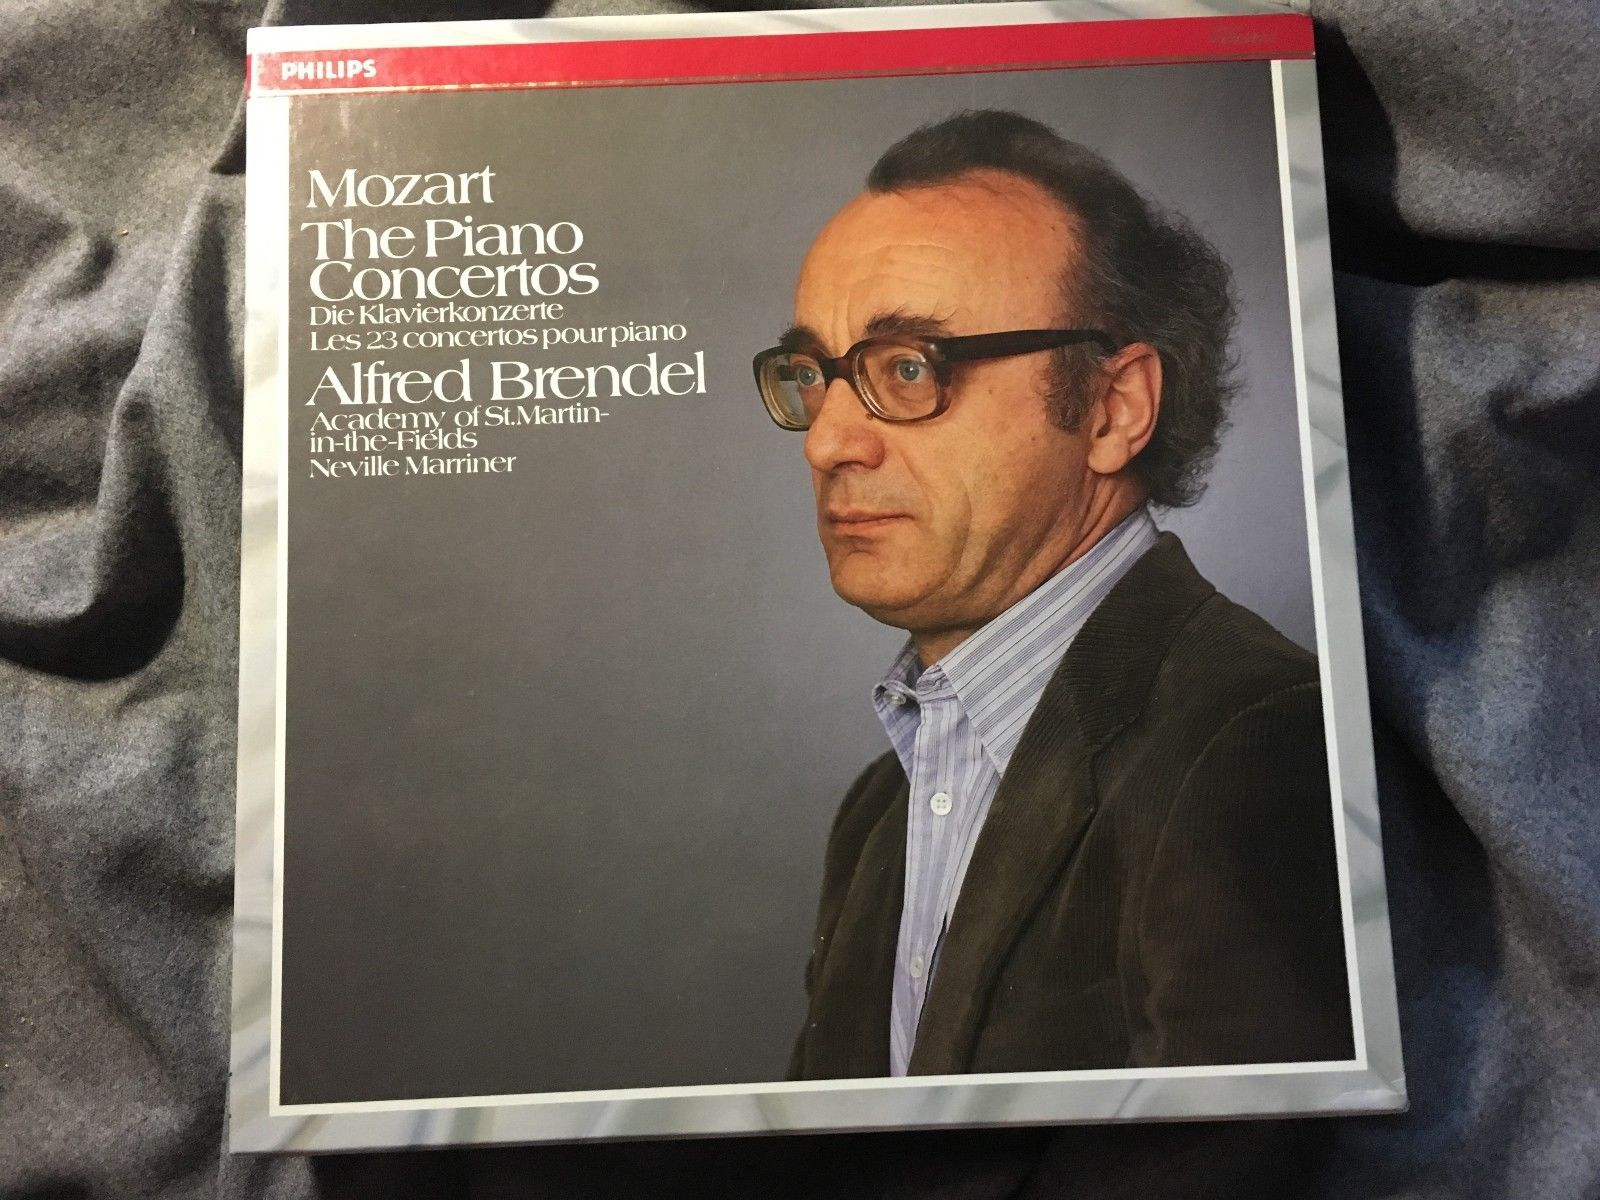 BRENDEL MOZART 23 Piano Concertos w/ MARRINER PHILIPS 13LP STEREO / DIGITAL Mint